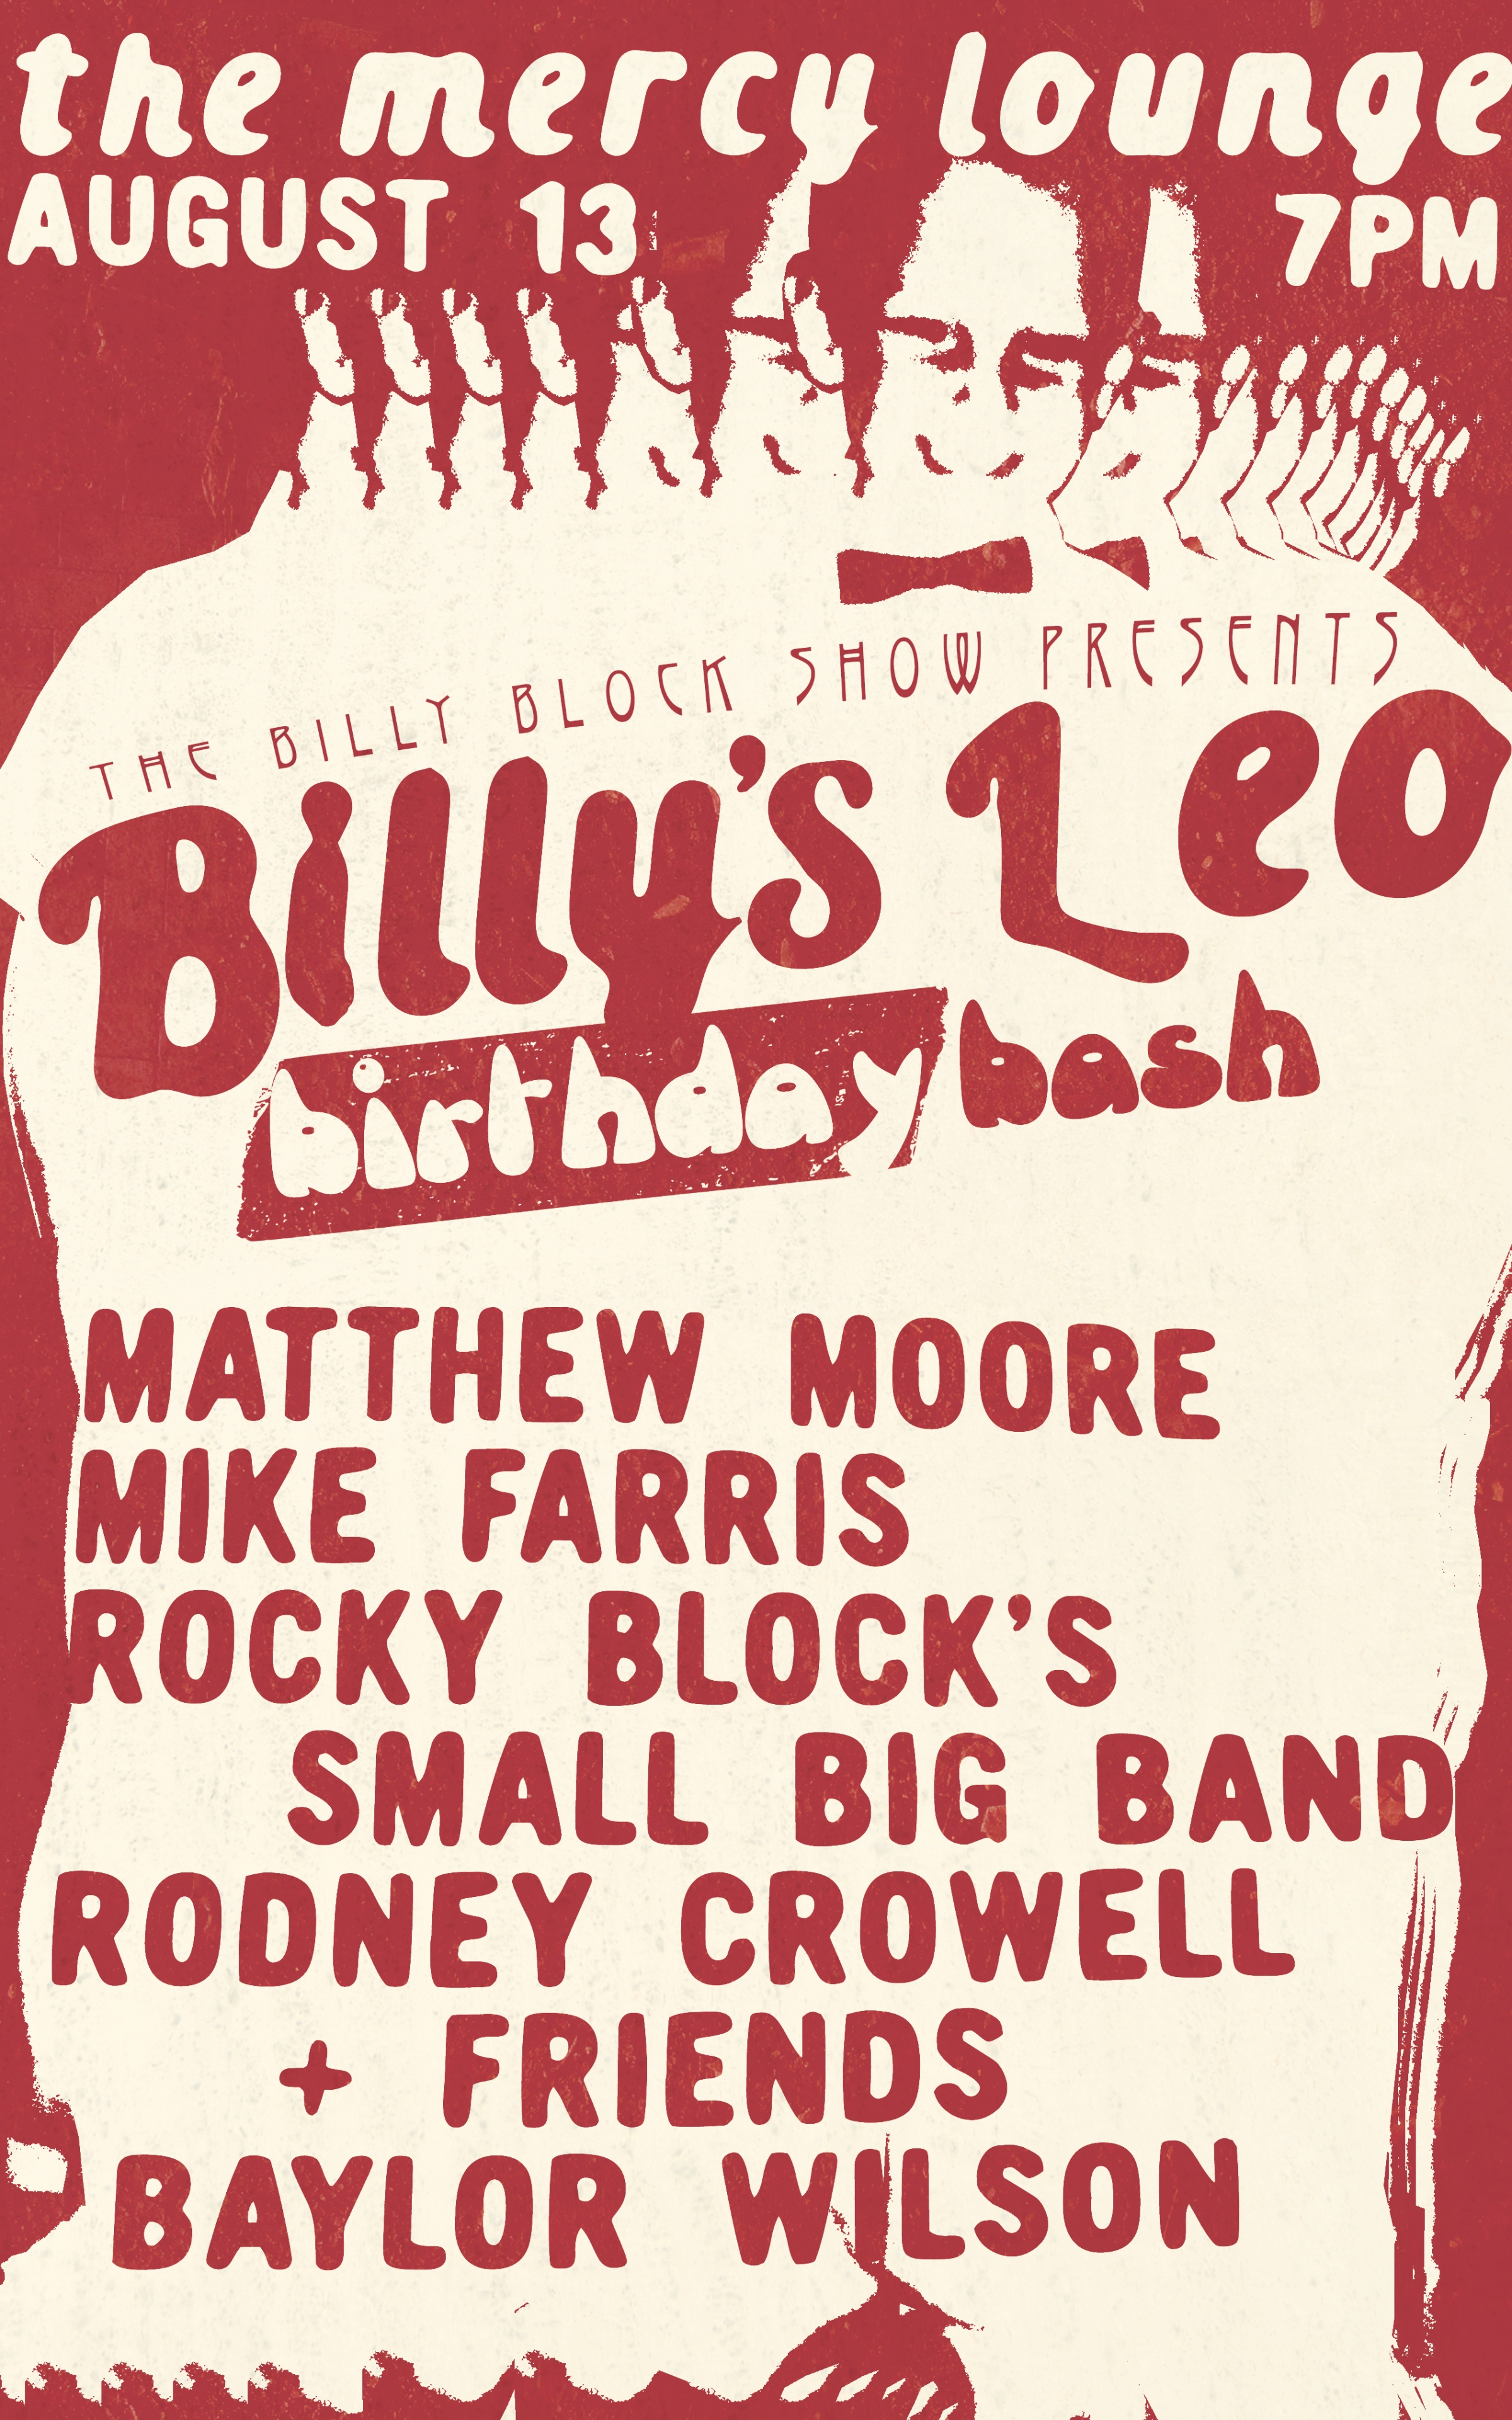 Billy's Leo Birthday Bash /// The Billy Block Show